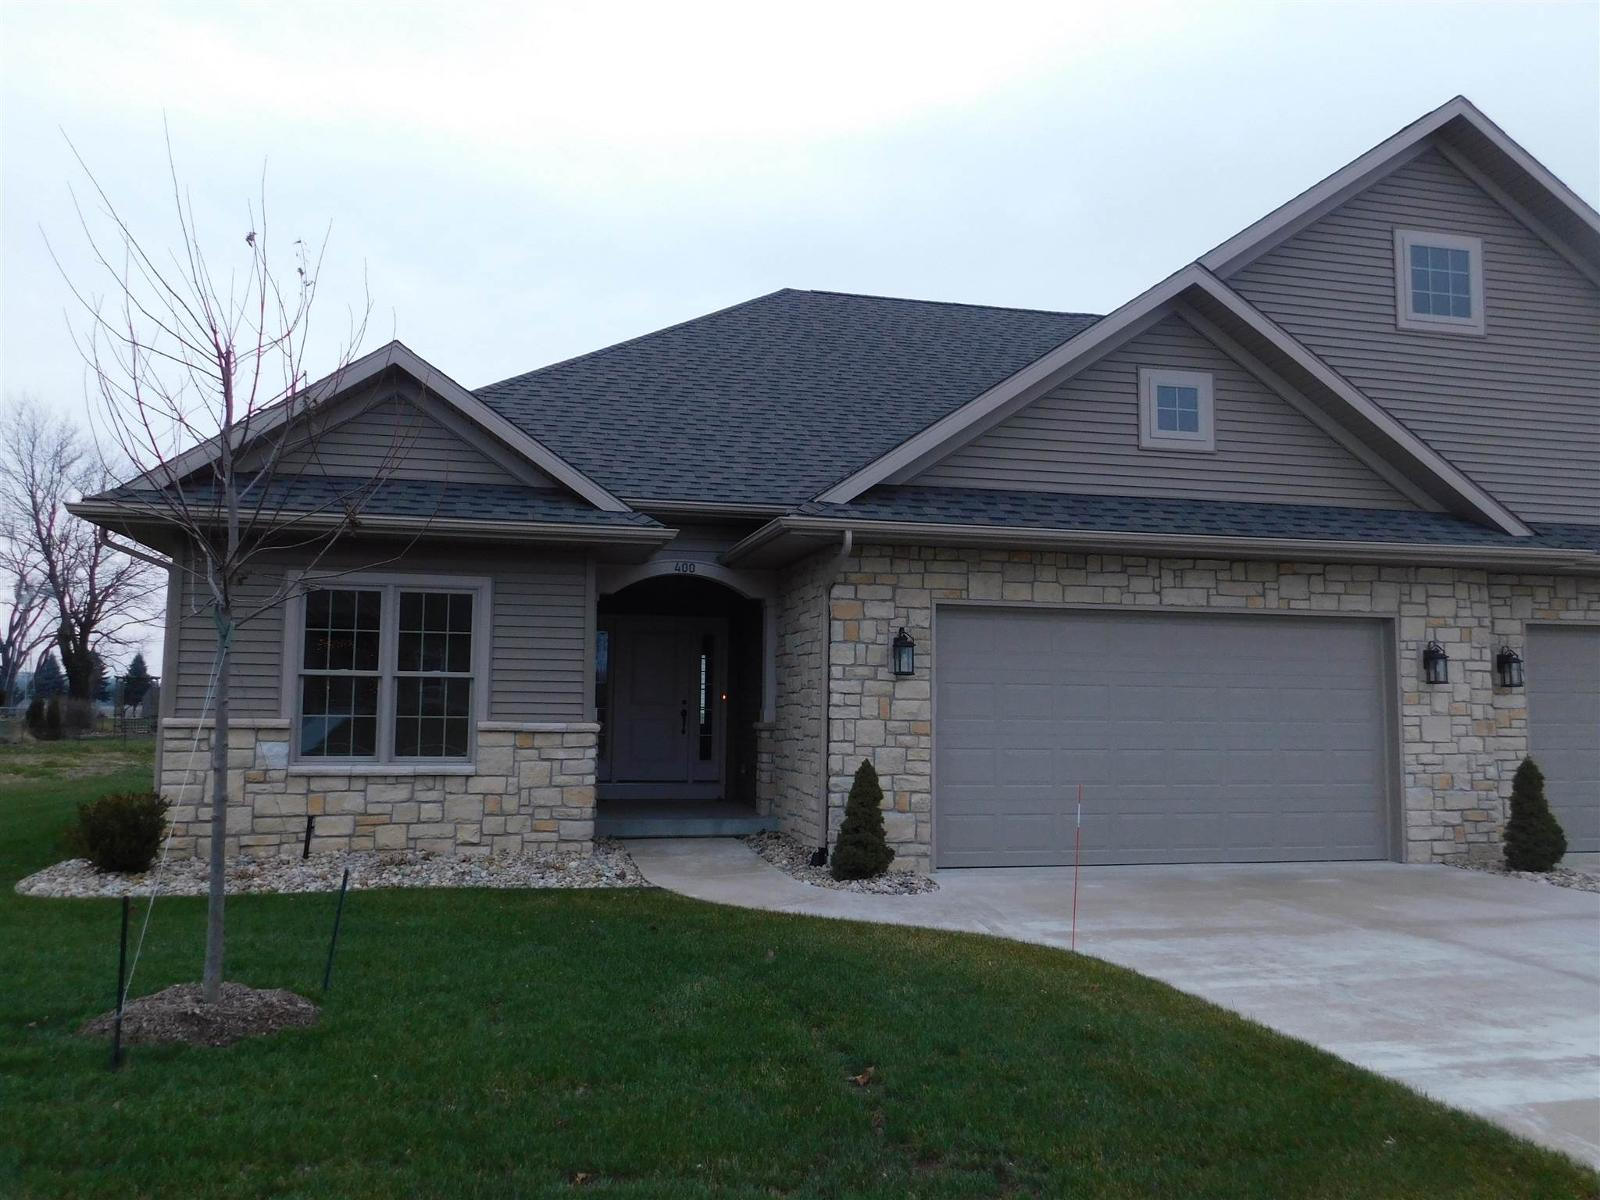 local real estate homes for sale 46506 coldwell banker rh coldwellbanker com Foreclosure Listings Home Sold Sign